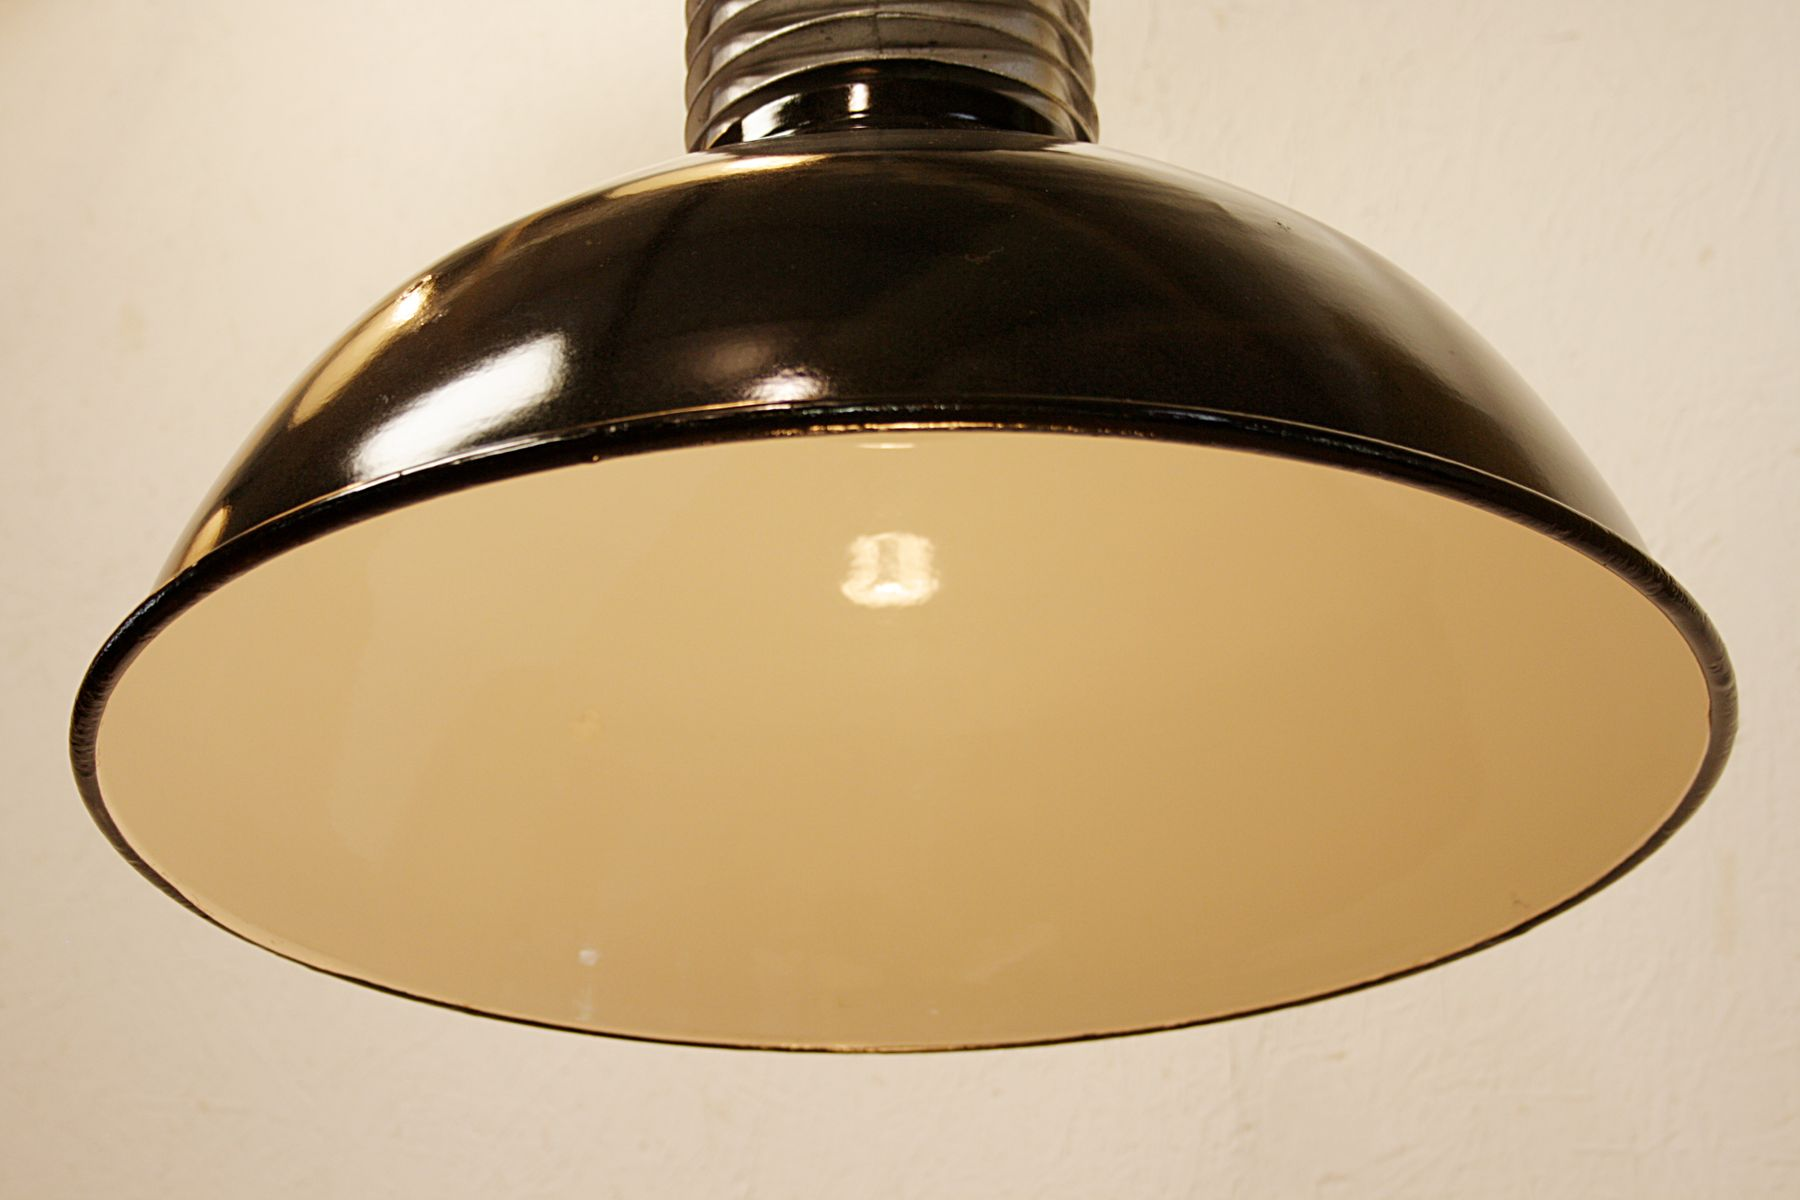 Vintage Industrial Pendant Light from Philips 1960s for sale at